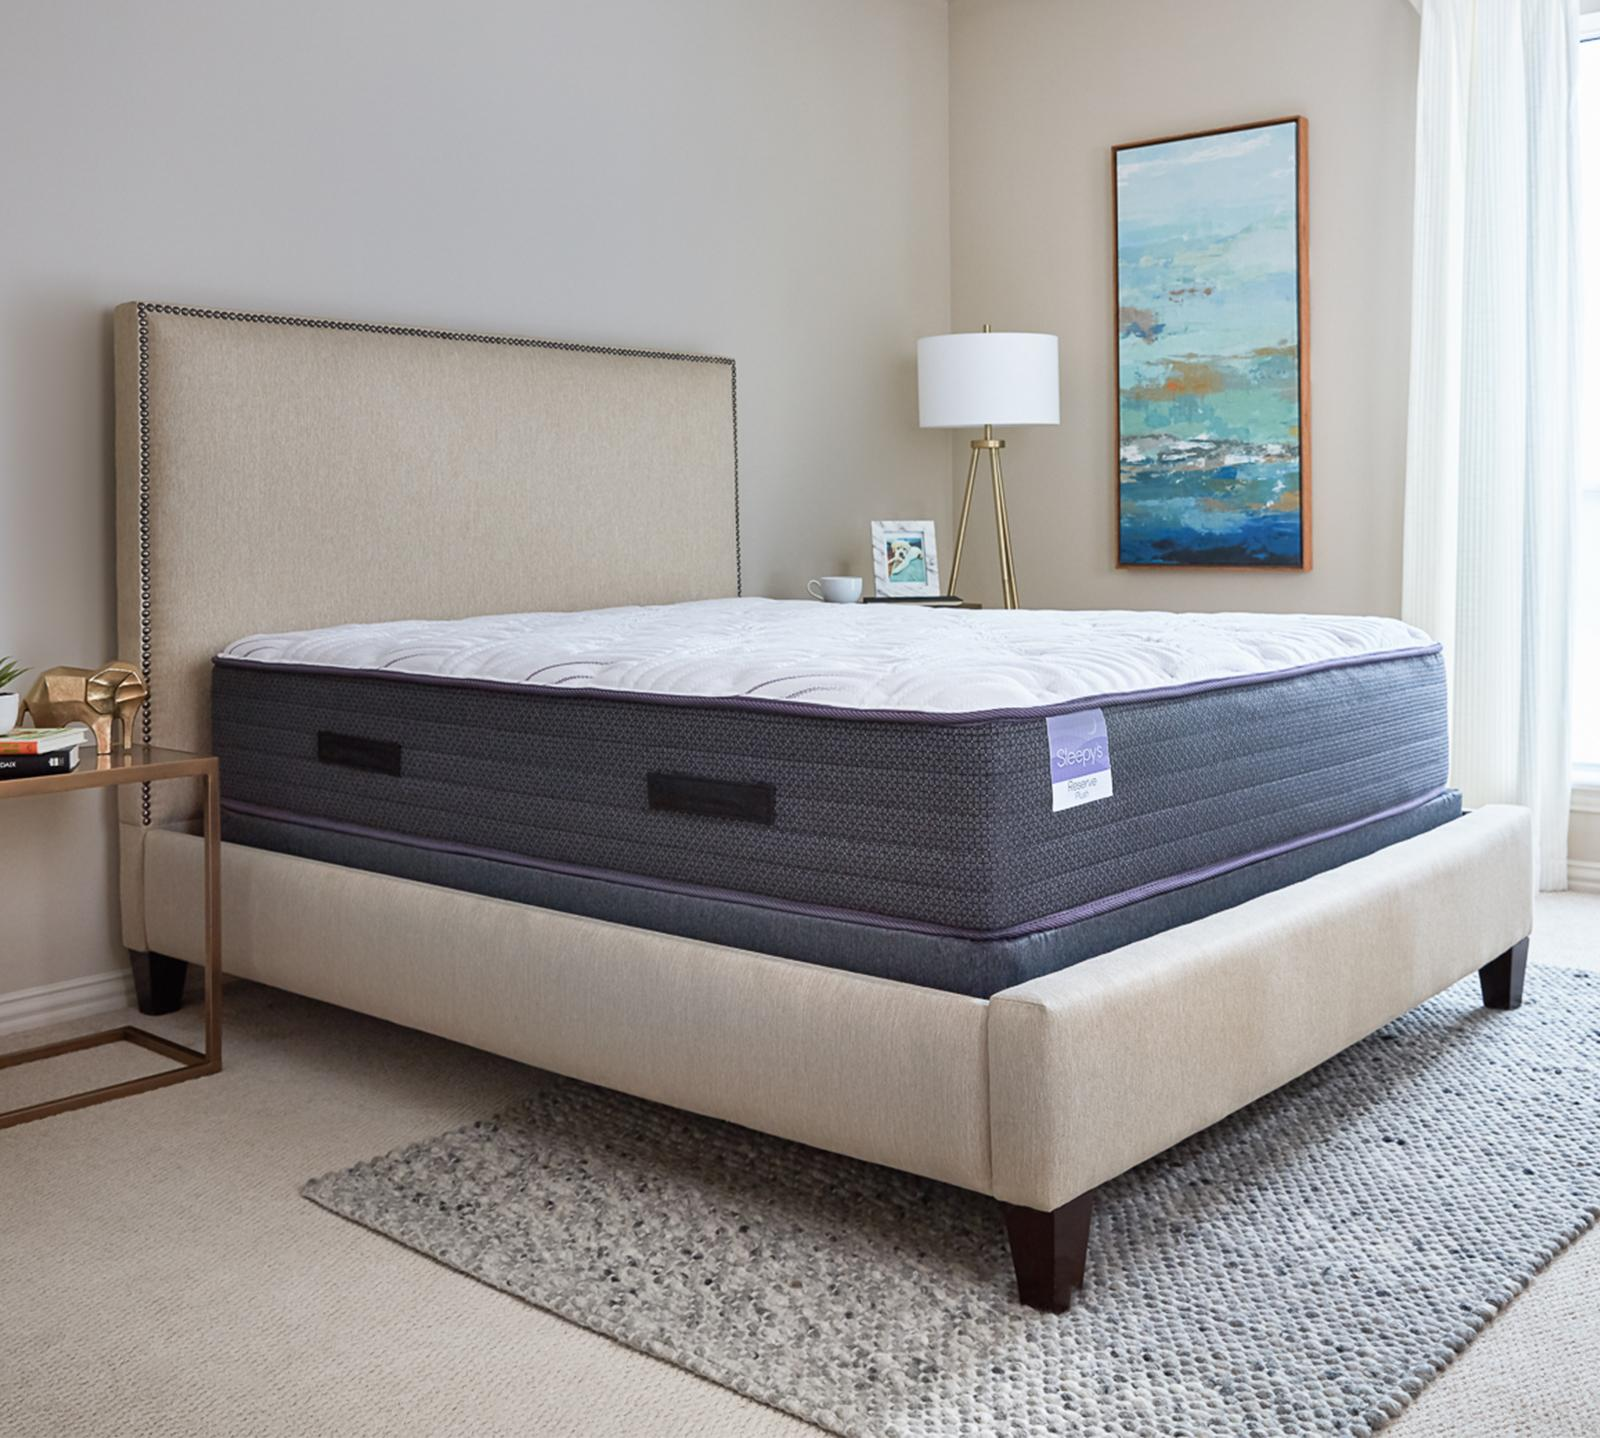 Sleepy's Twin Extra Long Reserve 13 Inch Plush Encased Coil Mattress